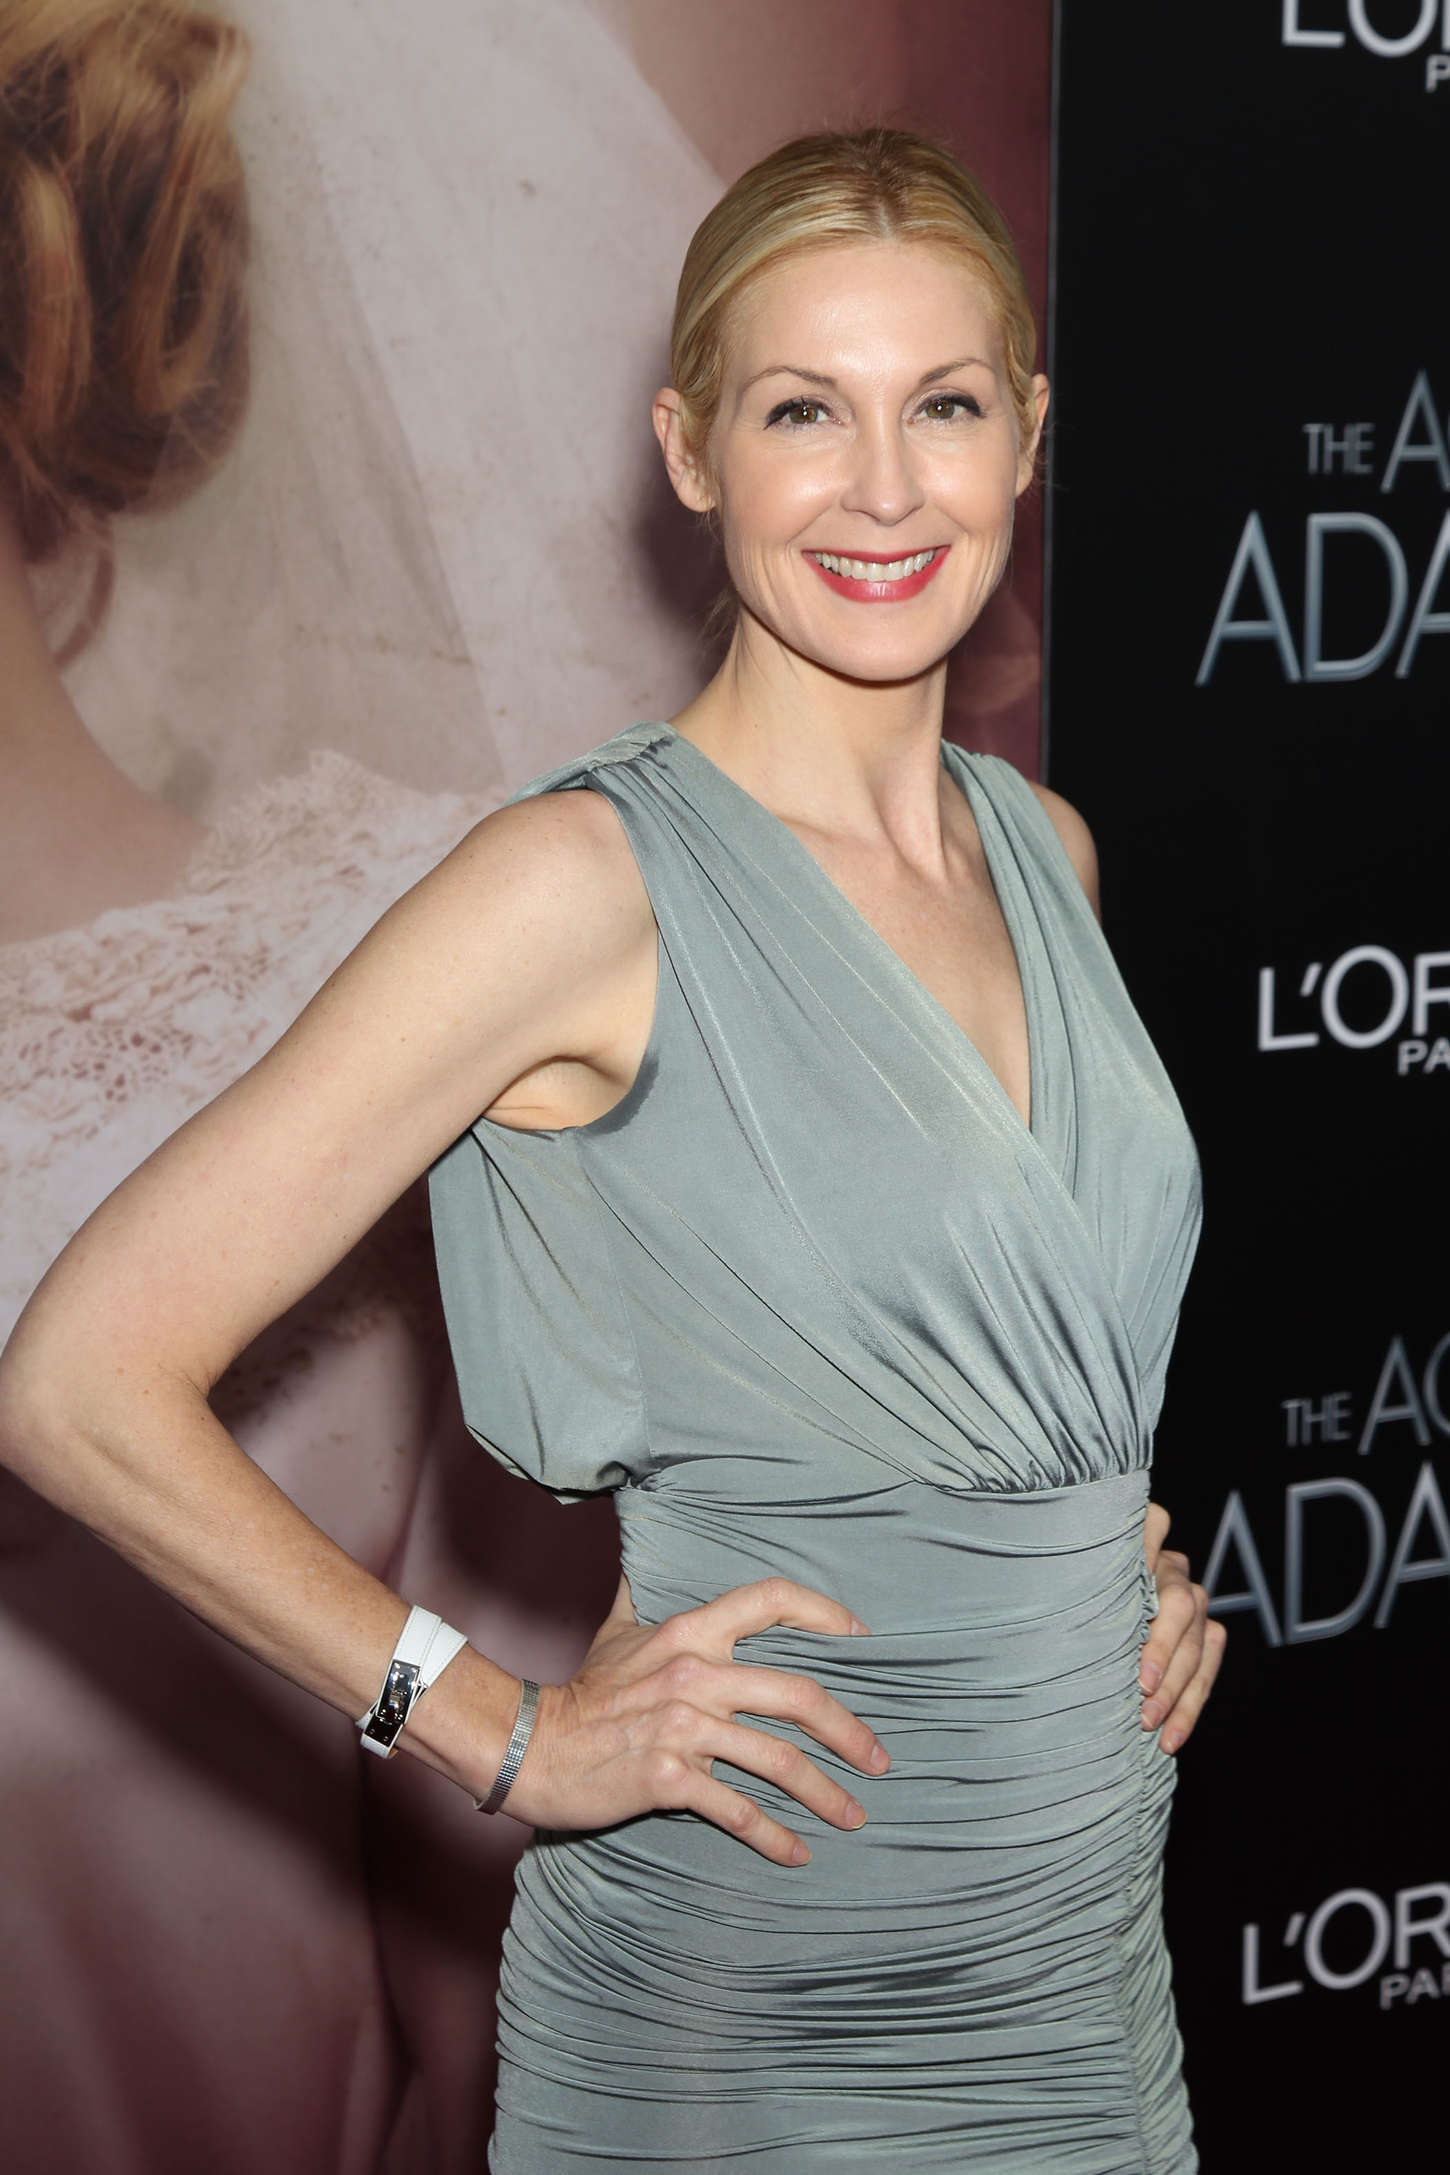 Kelly Rutherford The Age of Adaline Premiere in New York